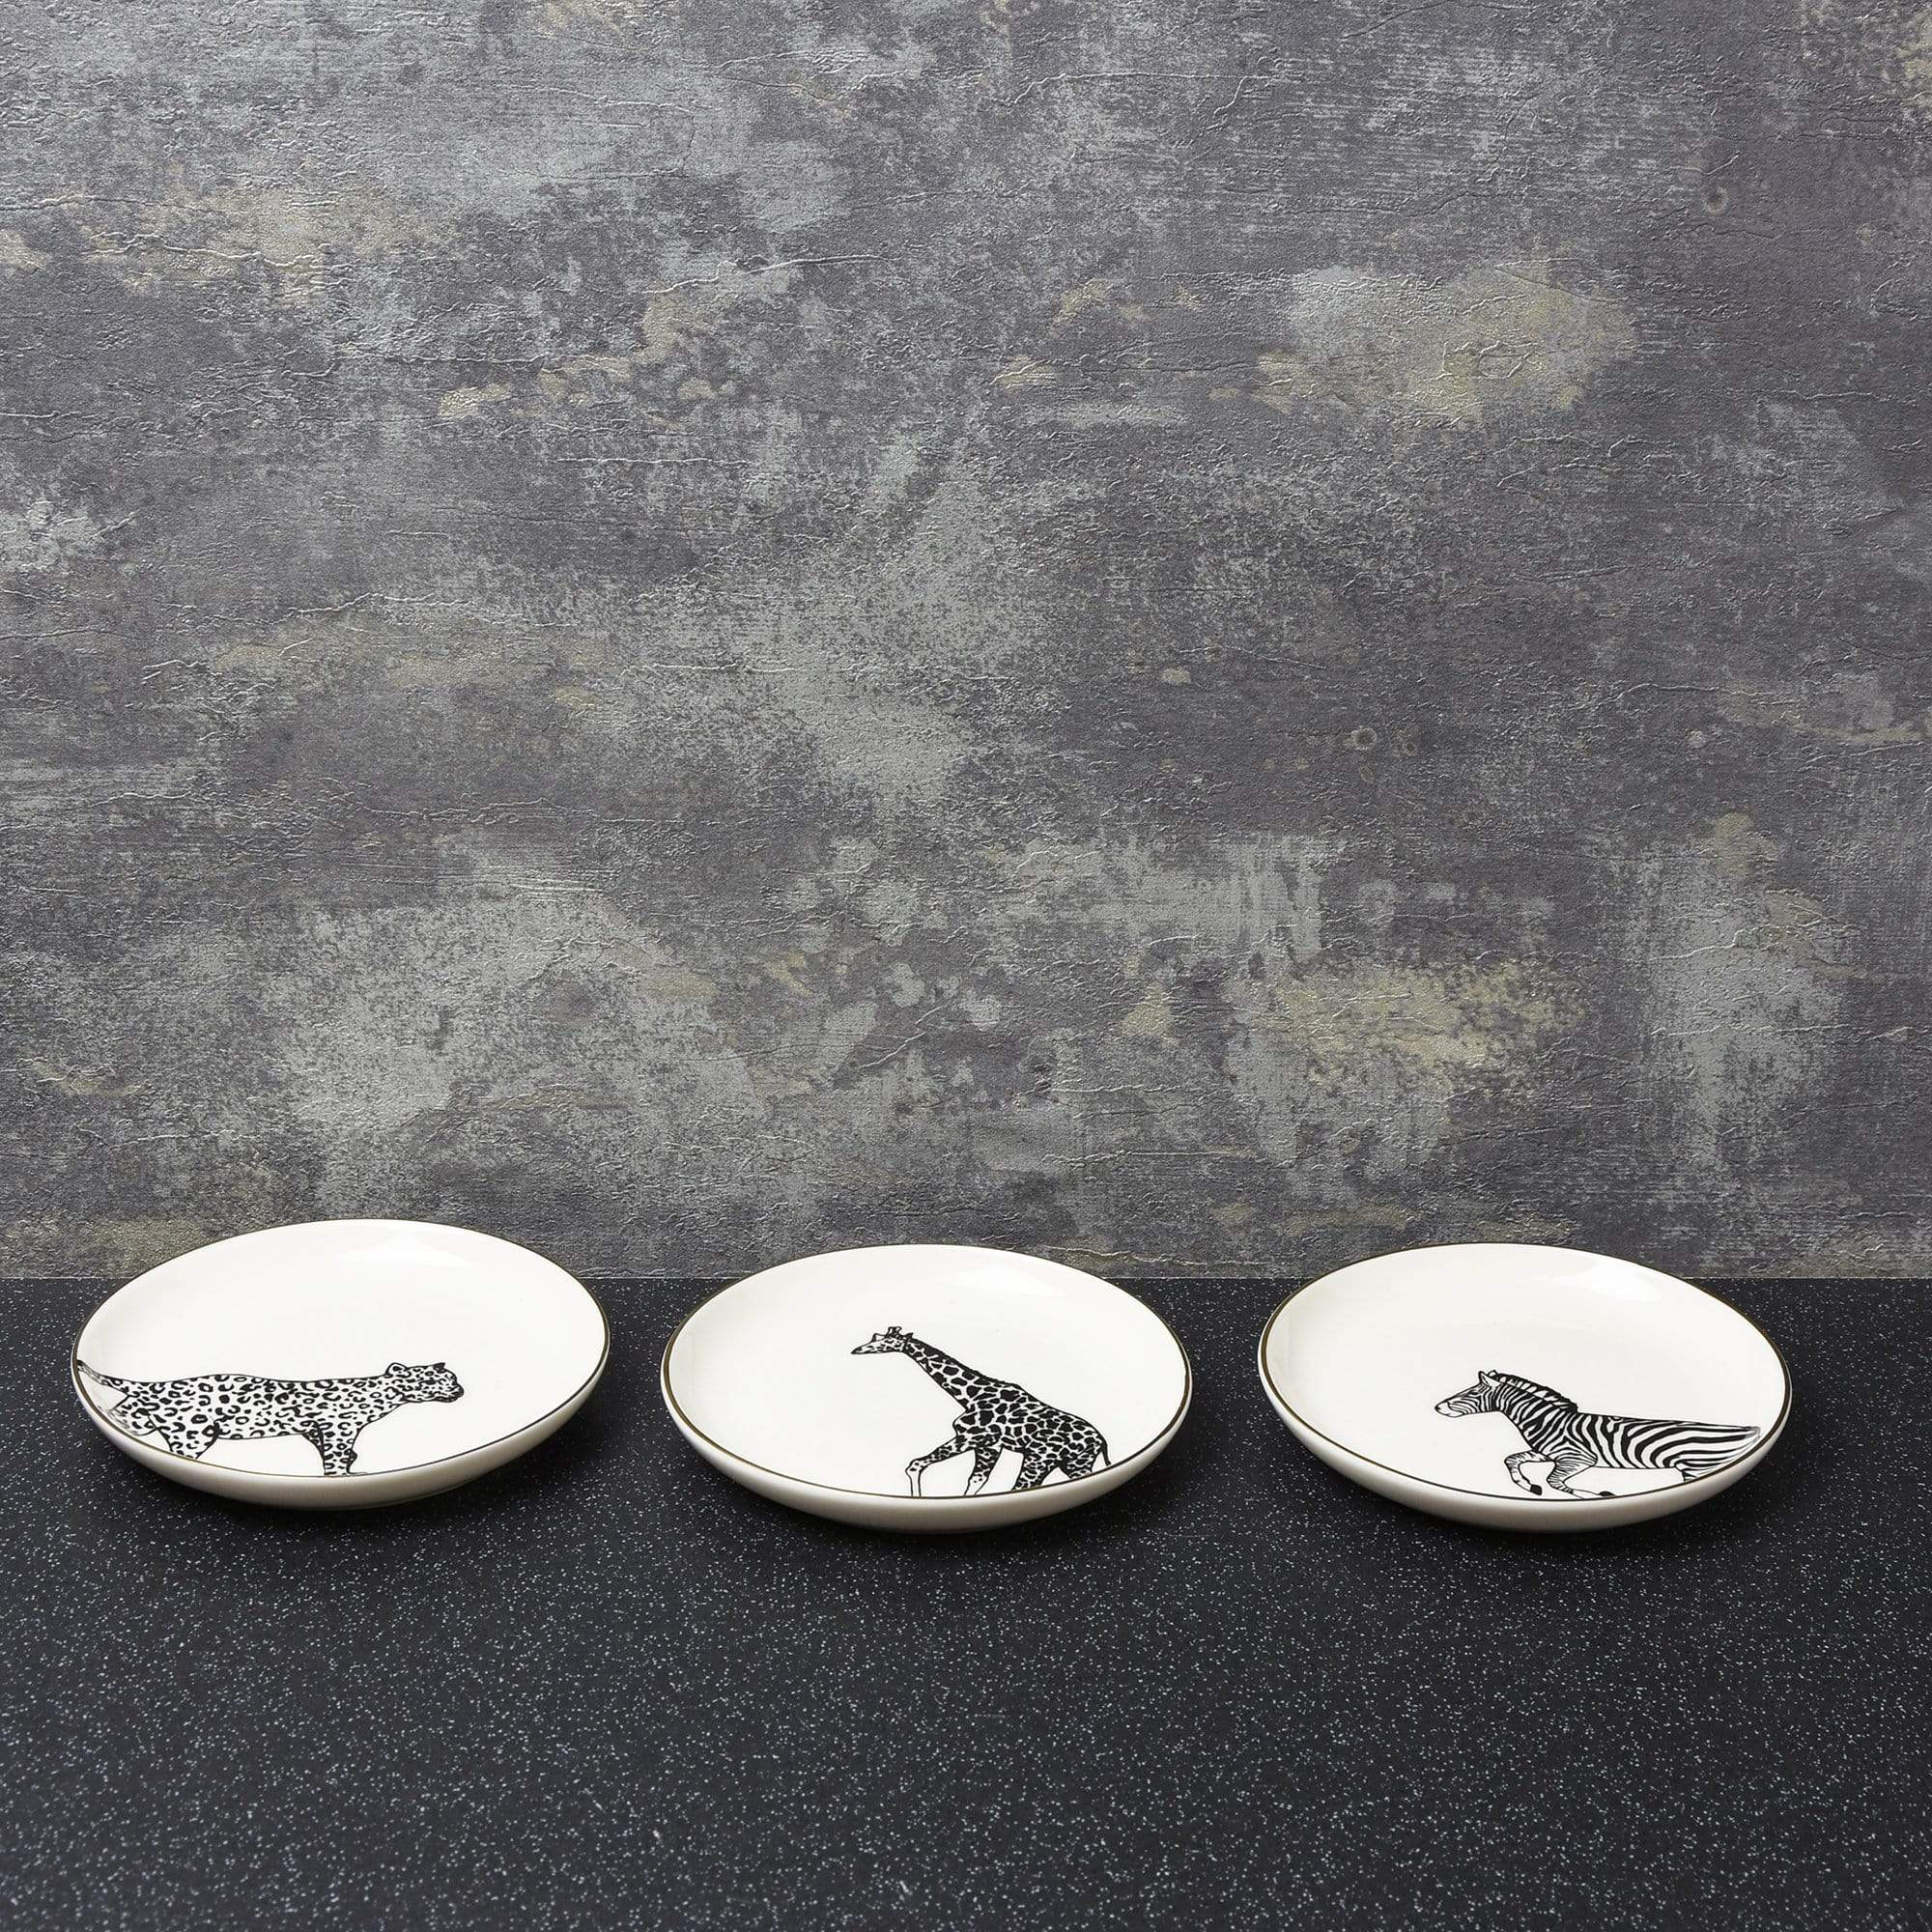 Candlelight Home Trinket Dish Animal Luxe Assorted Trinket Dishes Black 2.2cm 9PK